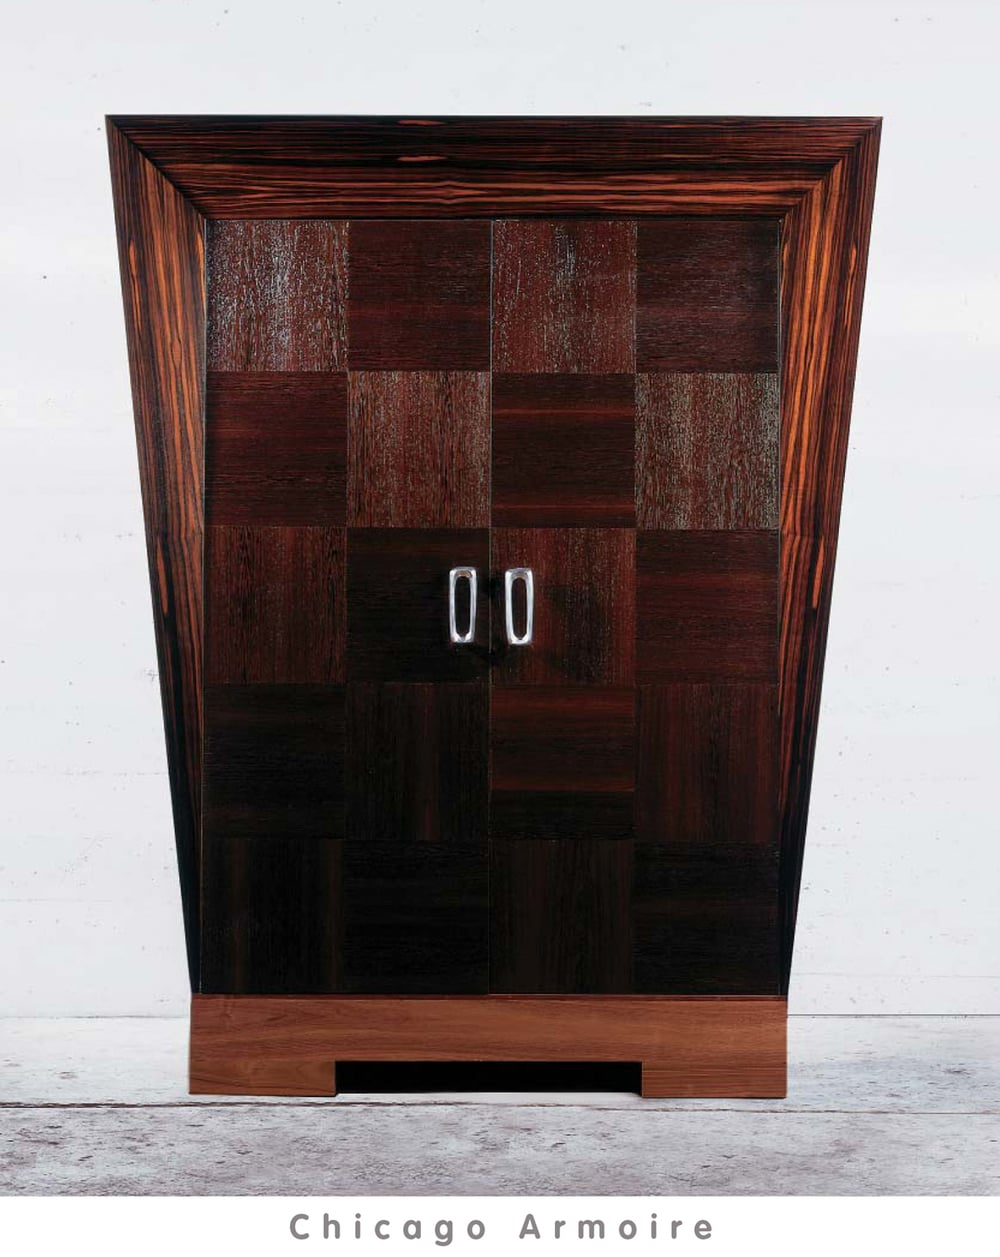 View: Chicago Armoire Catalog Page